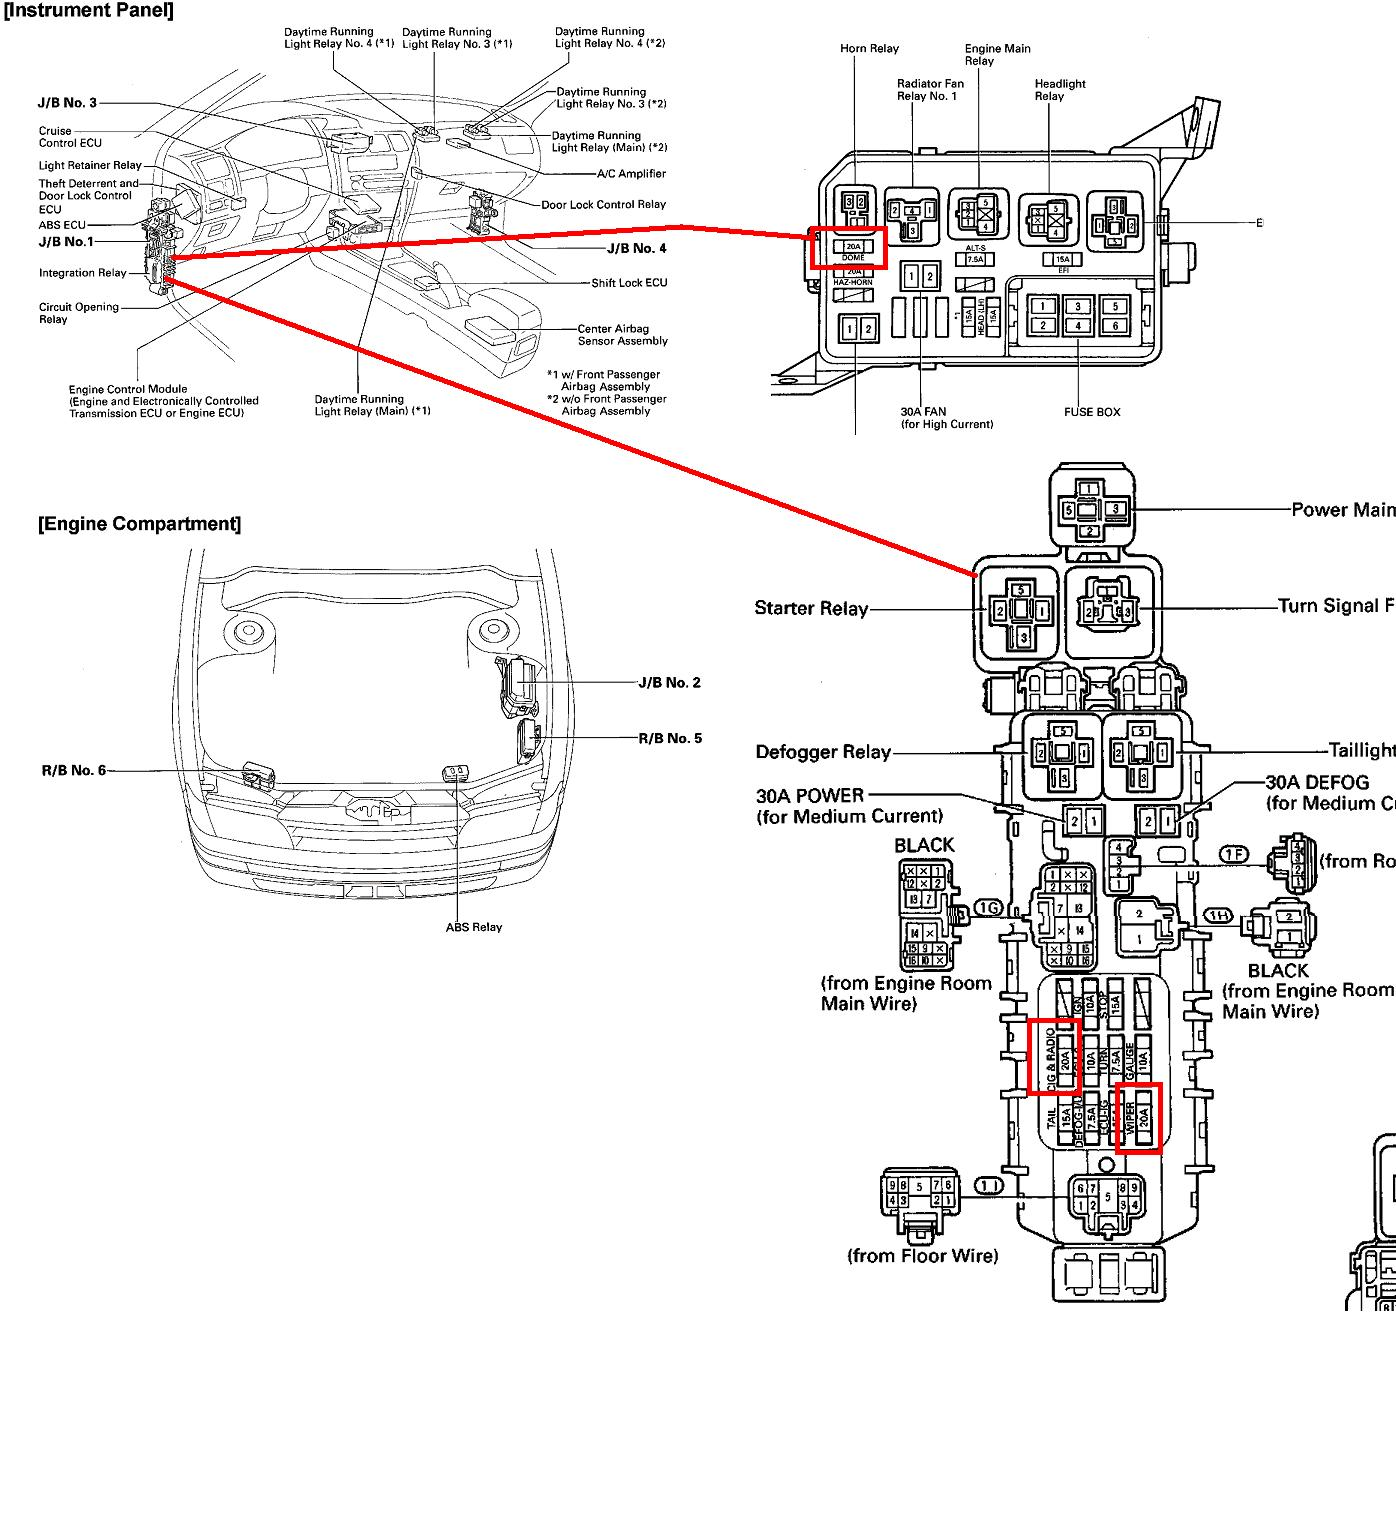 hight resolution of 2006 corolla fuse box diagram wiring diagrams mon 2006 toyota corolla fuse box location 1992 corolla